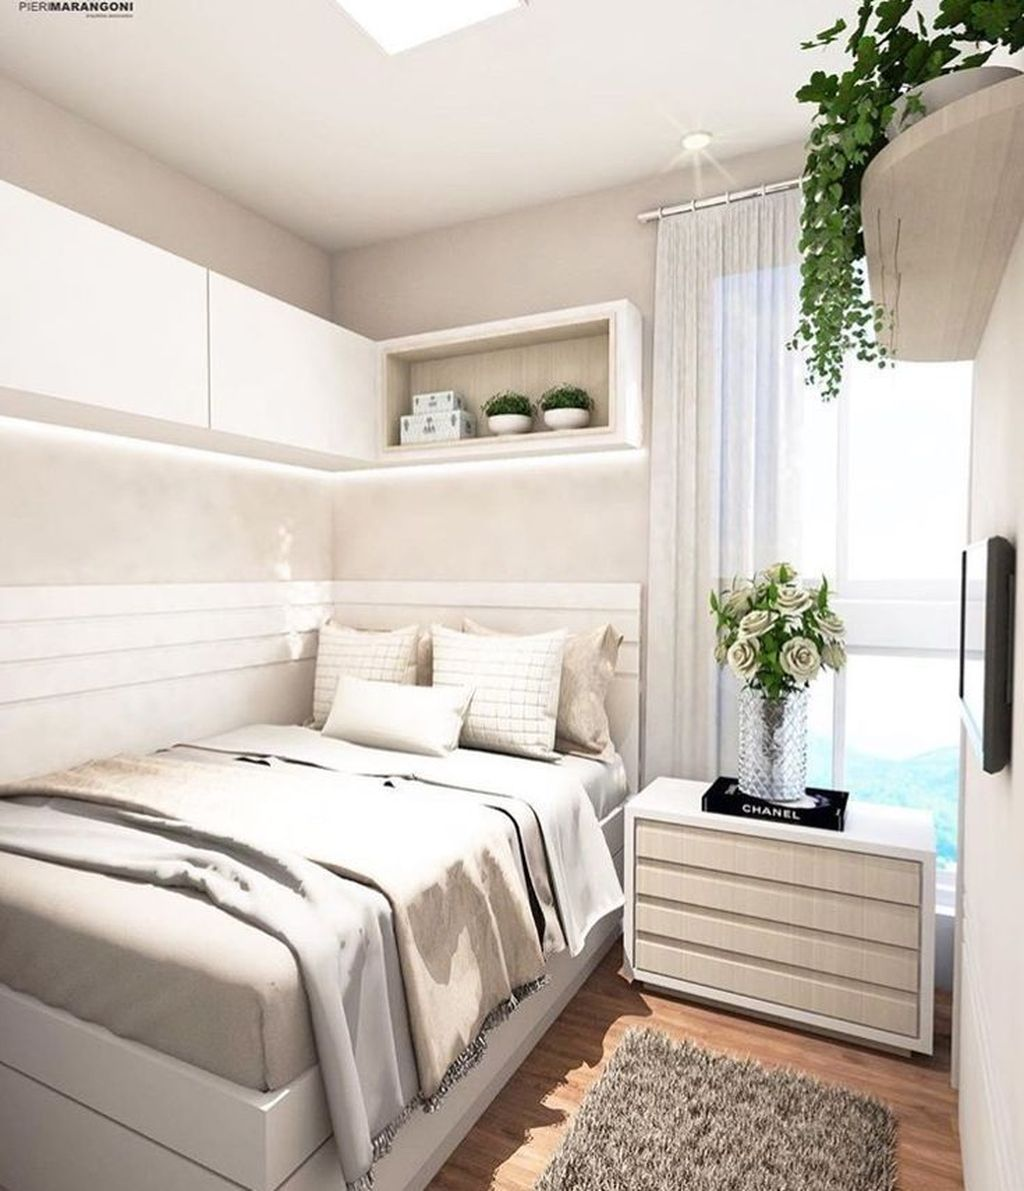 Admirable Small Bedroom Decor Ideas You Never Seen Before 22